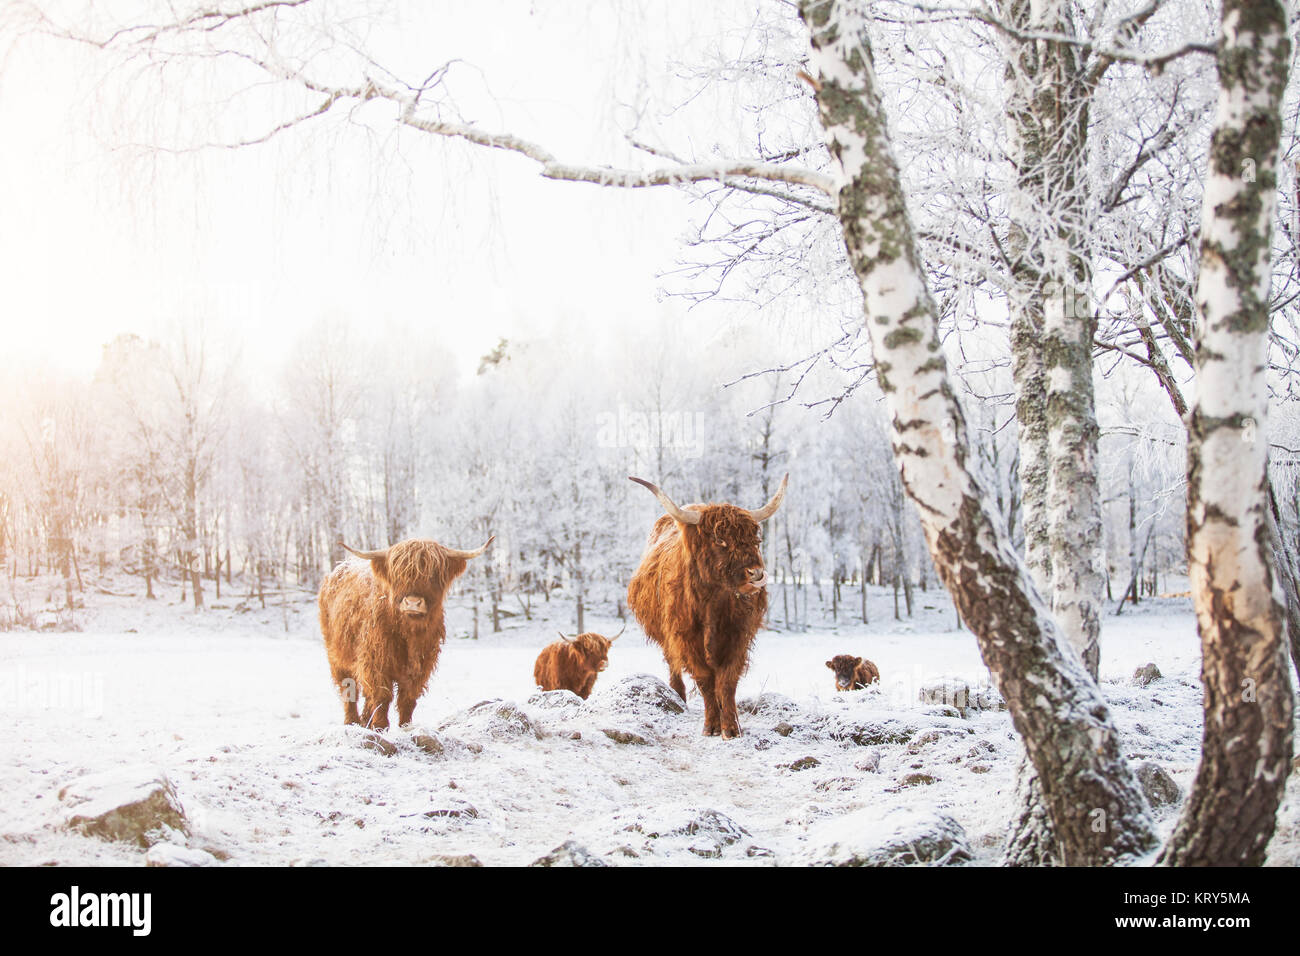 Highland cattle in the snow - Stock Image